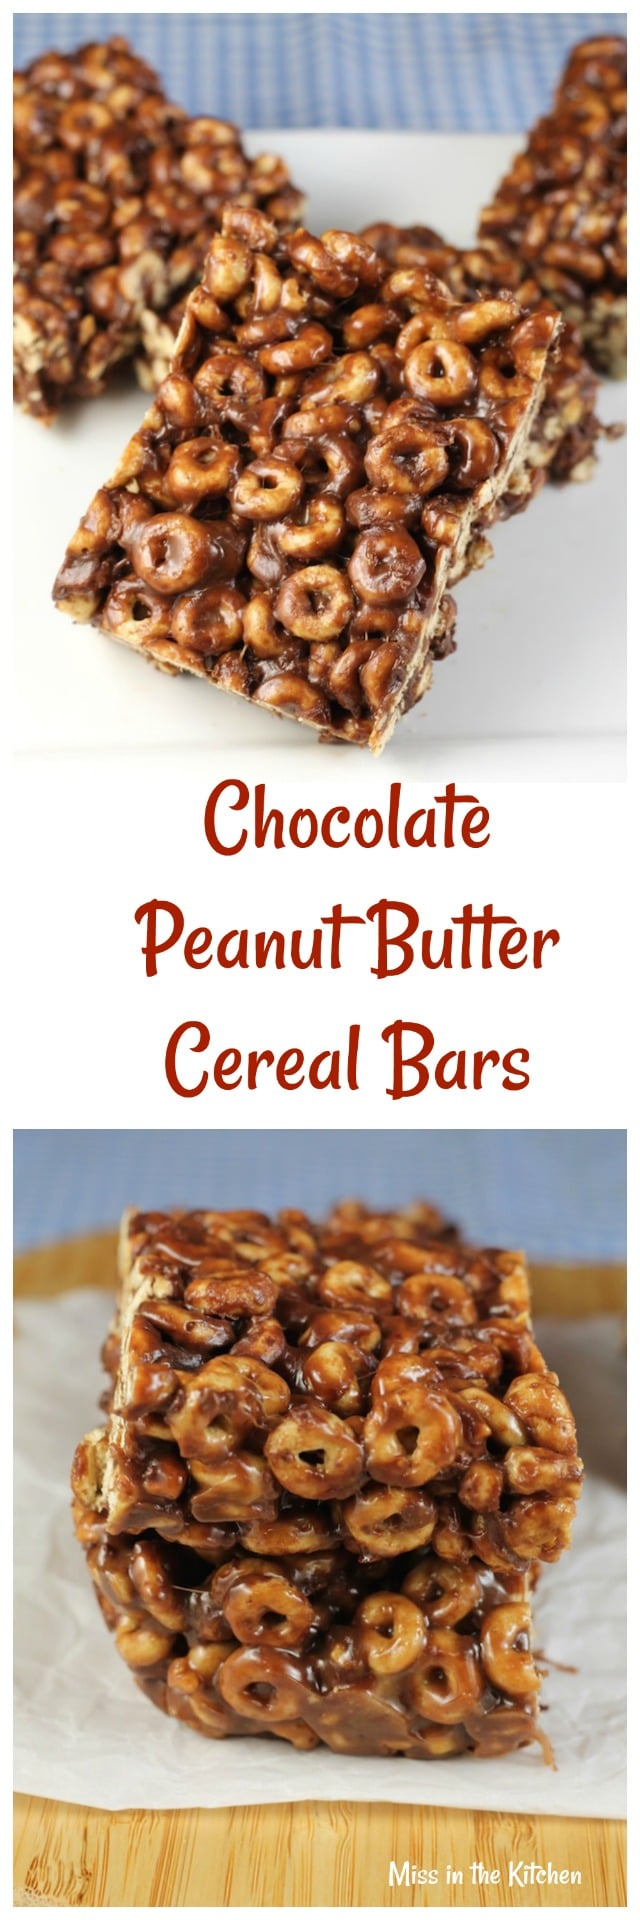 Chocolate Peanut Butter Cereal Bars + #BoxTops for Education ~ Sponsored by Walmart from MissintheKitchen.com